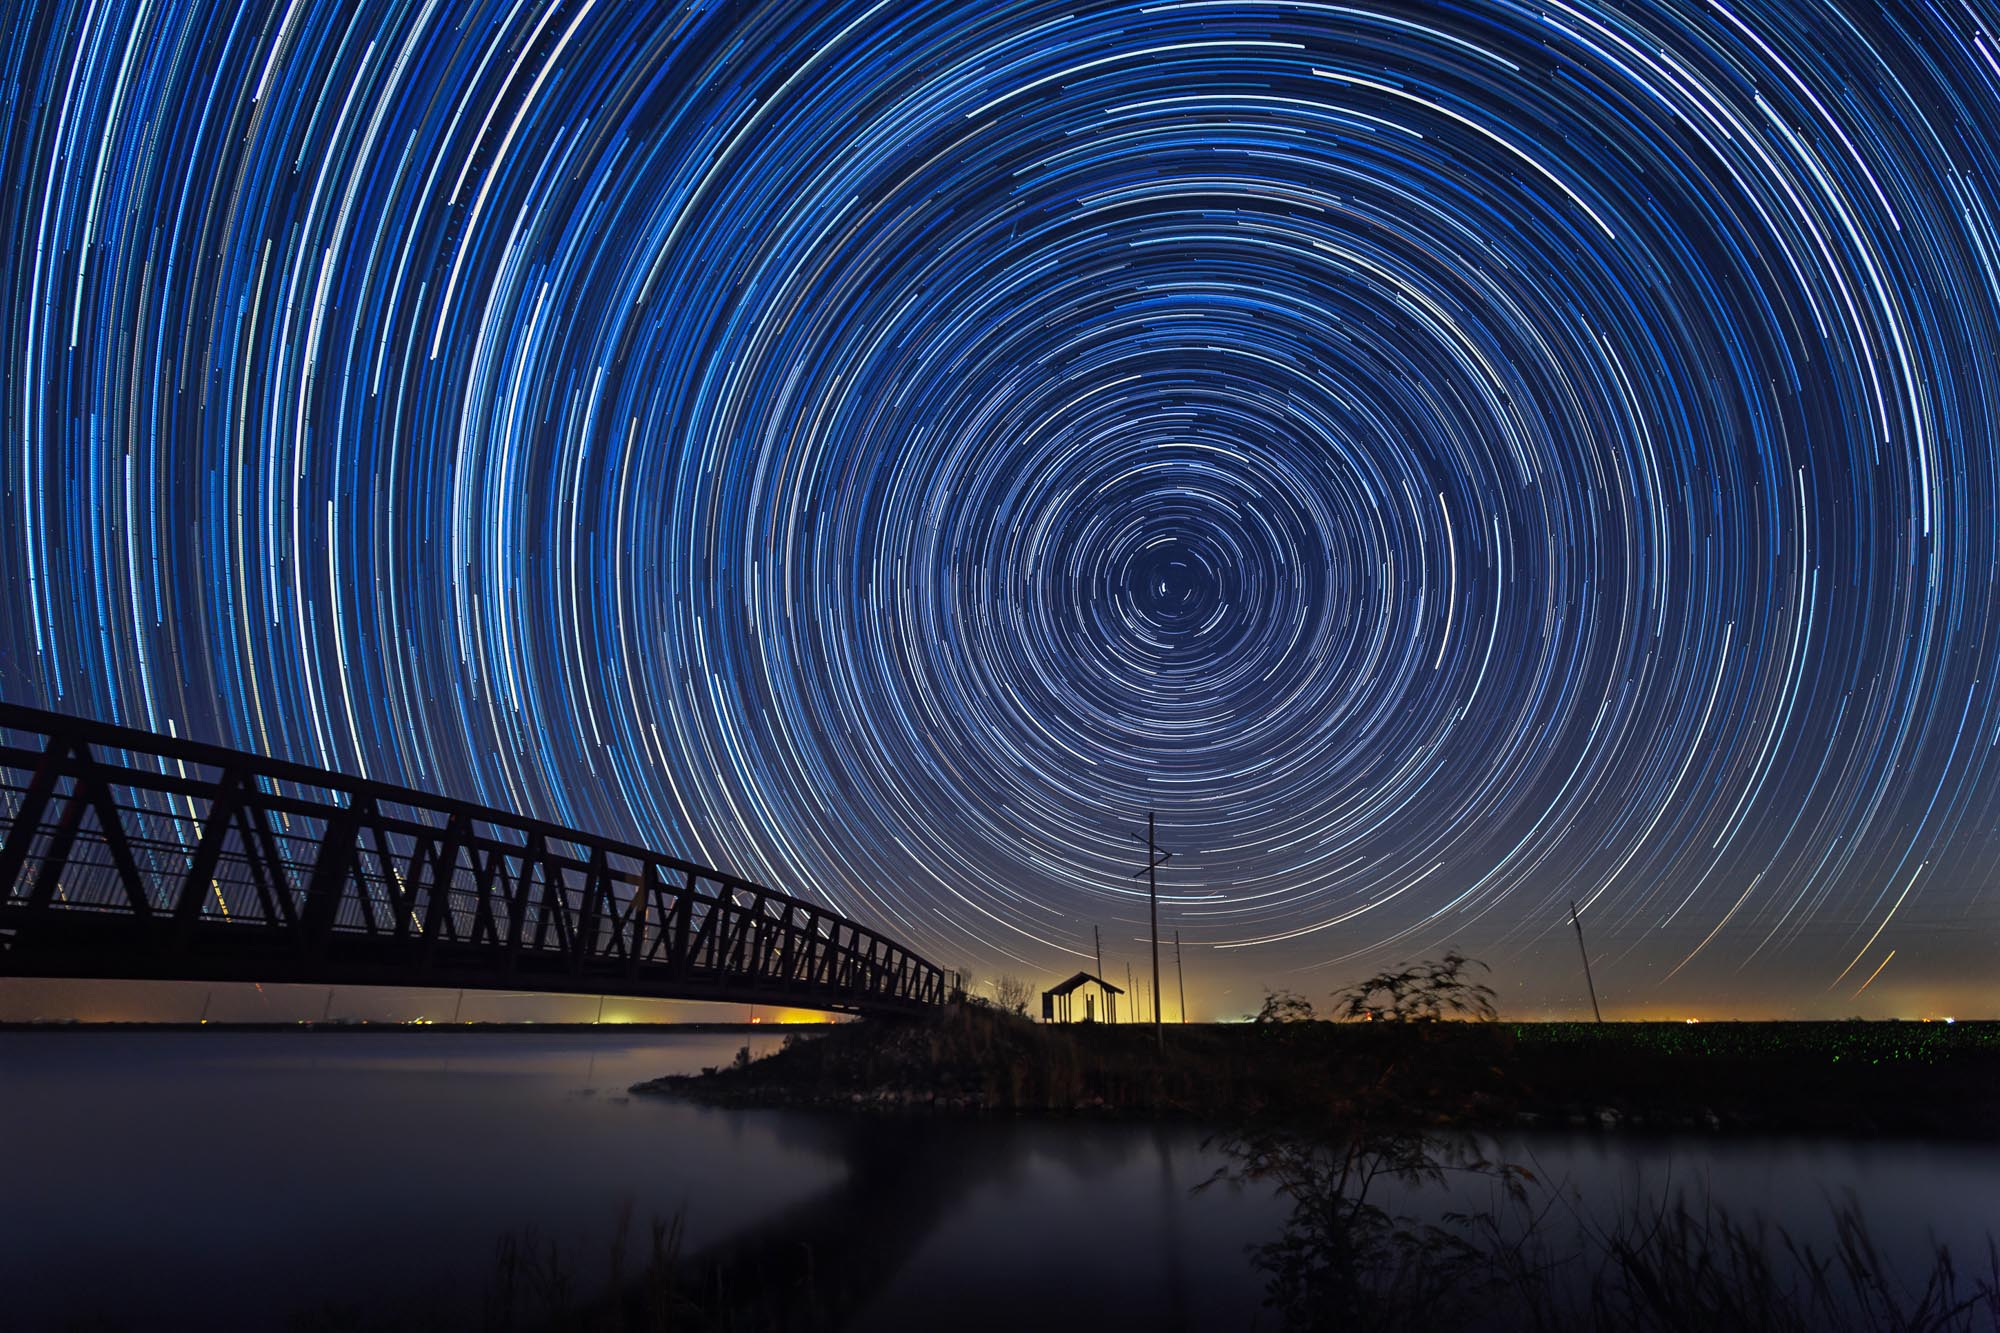 long exposure astrophotography of star trails in the Florida Everglades by a bridge and fishing hut